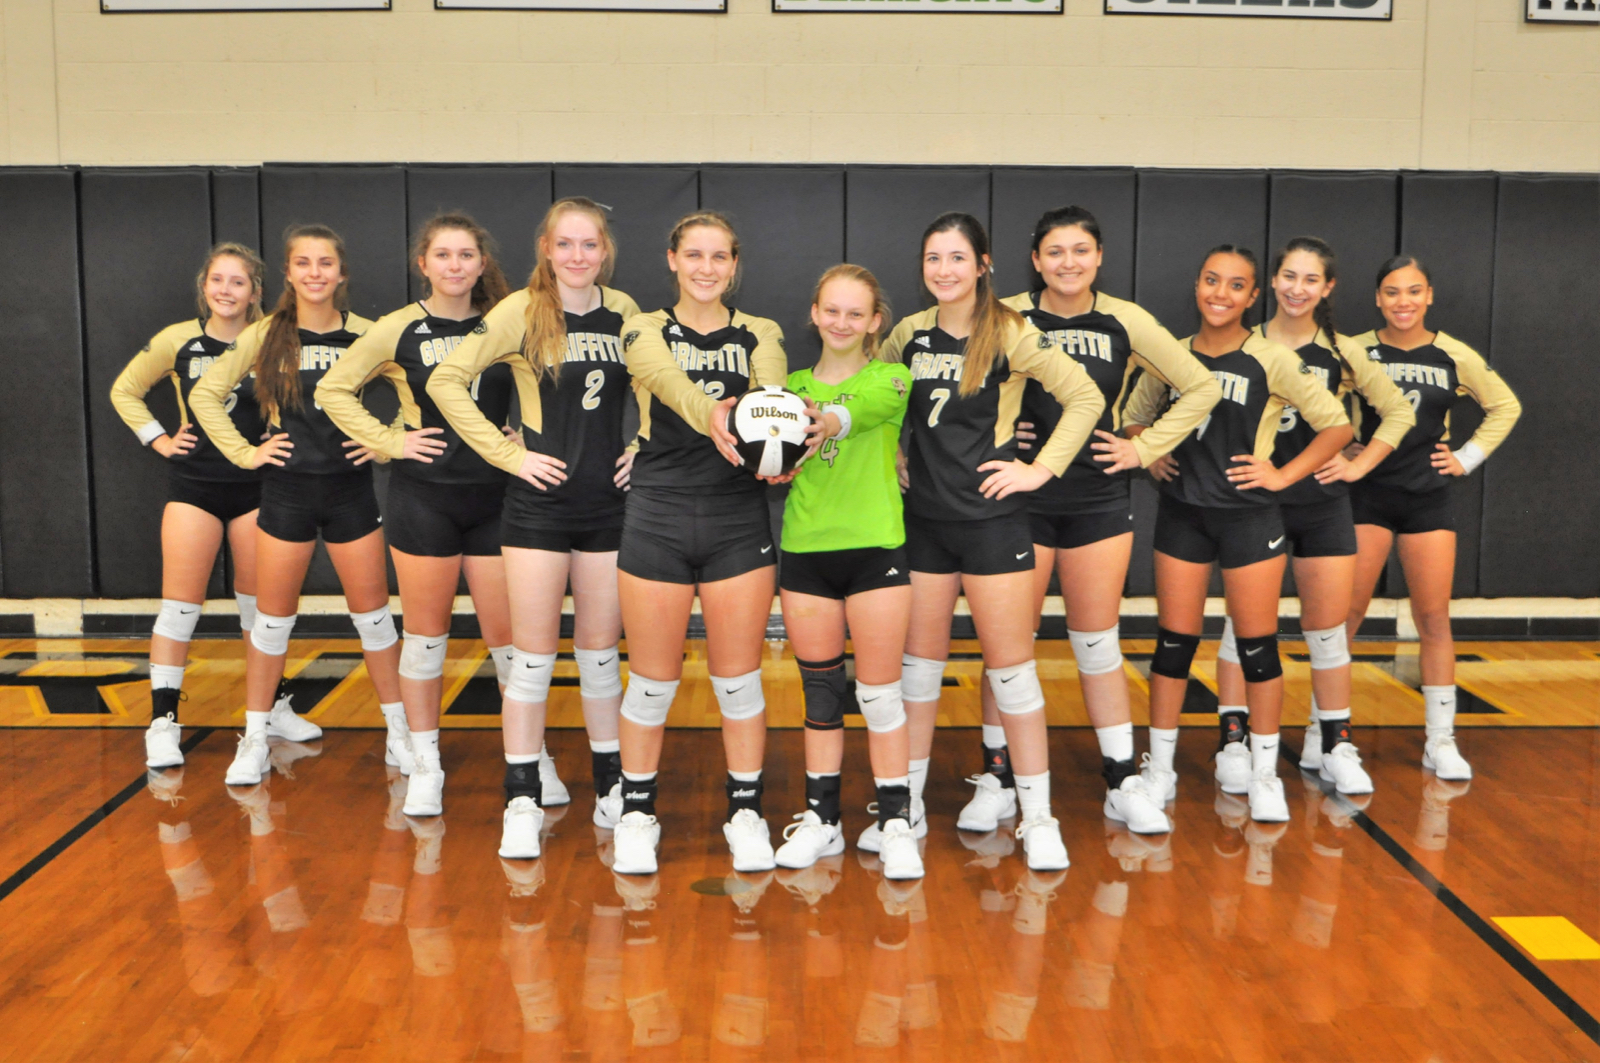 Congratulations to our Lady Panthers! Playing in the Sectional Finals tonight at 7 PM . Griffith vs. Gavit! Let's Go Lady Panthers!